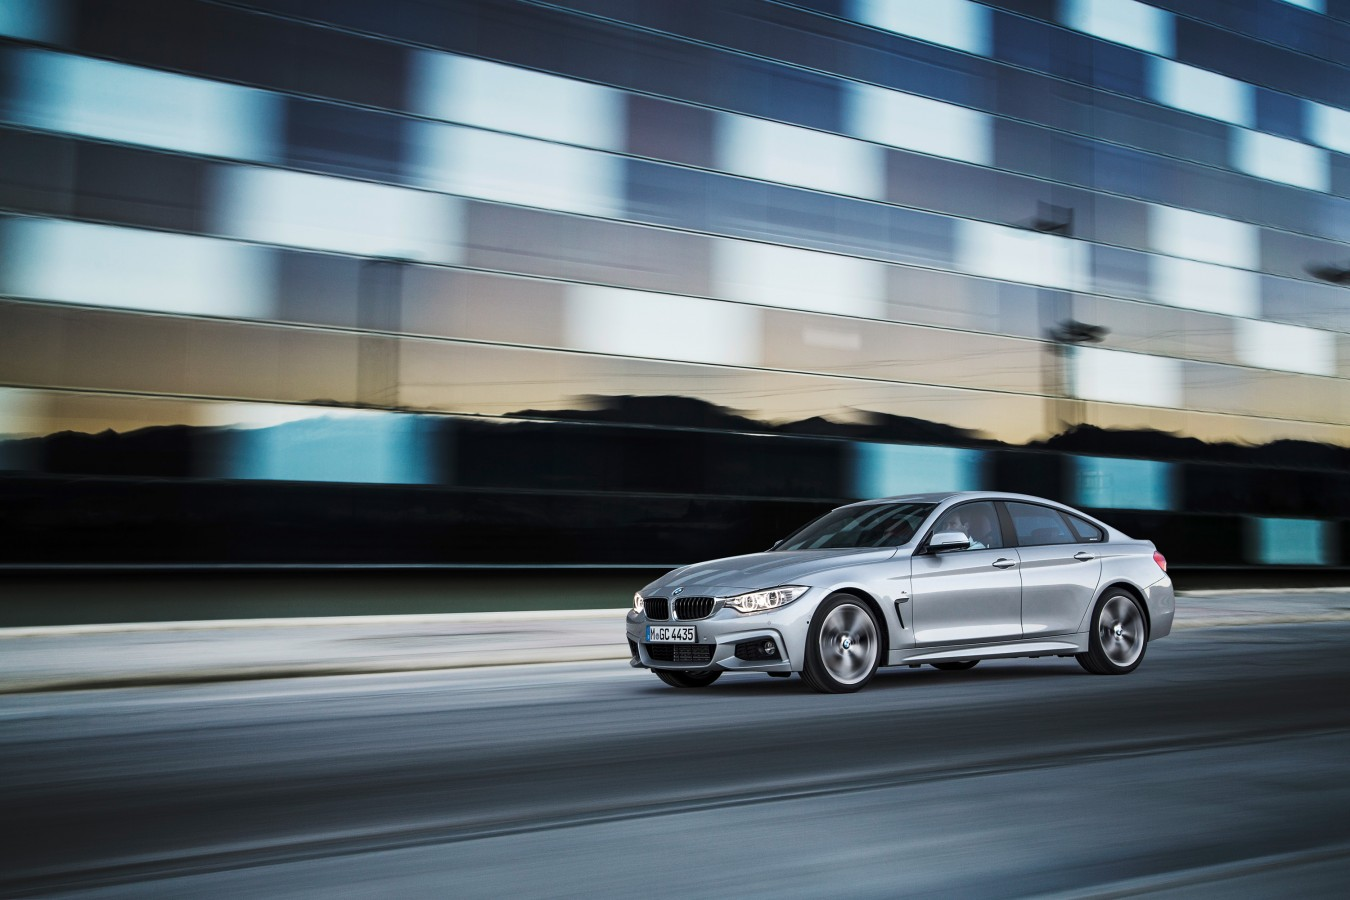 BMW 4 Series, Photo: Fabian Kirchbauer